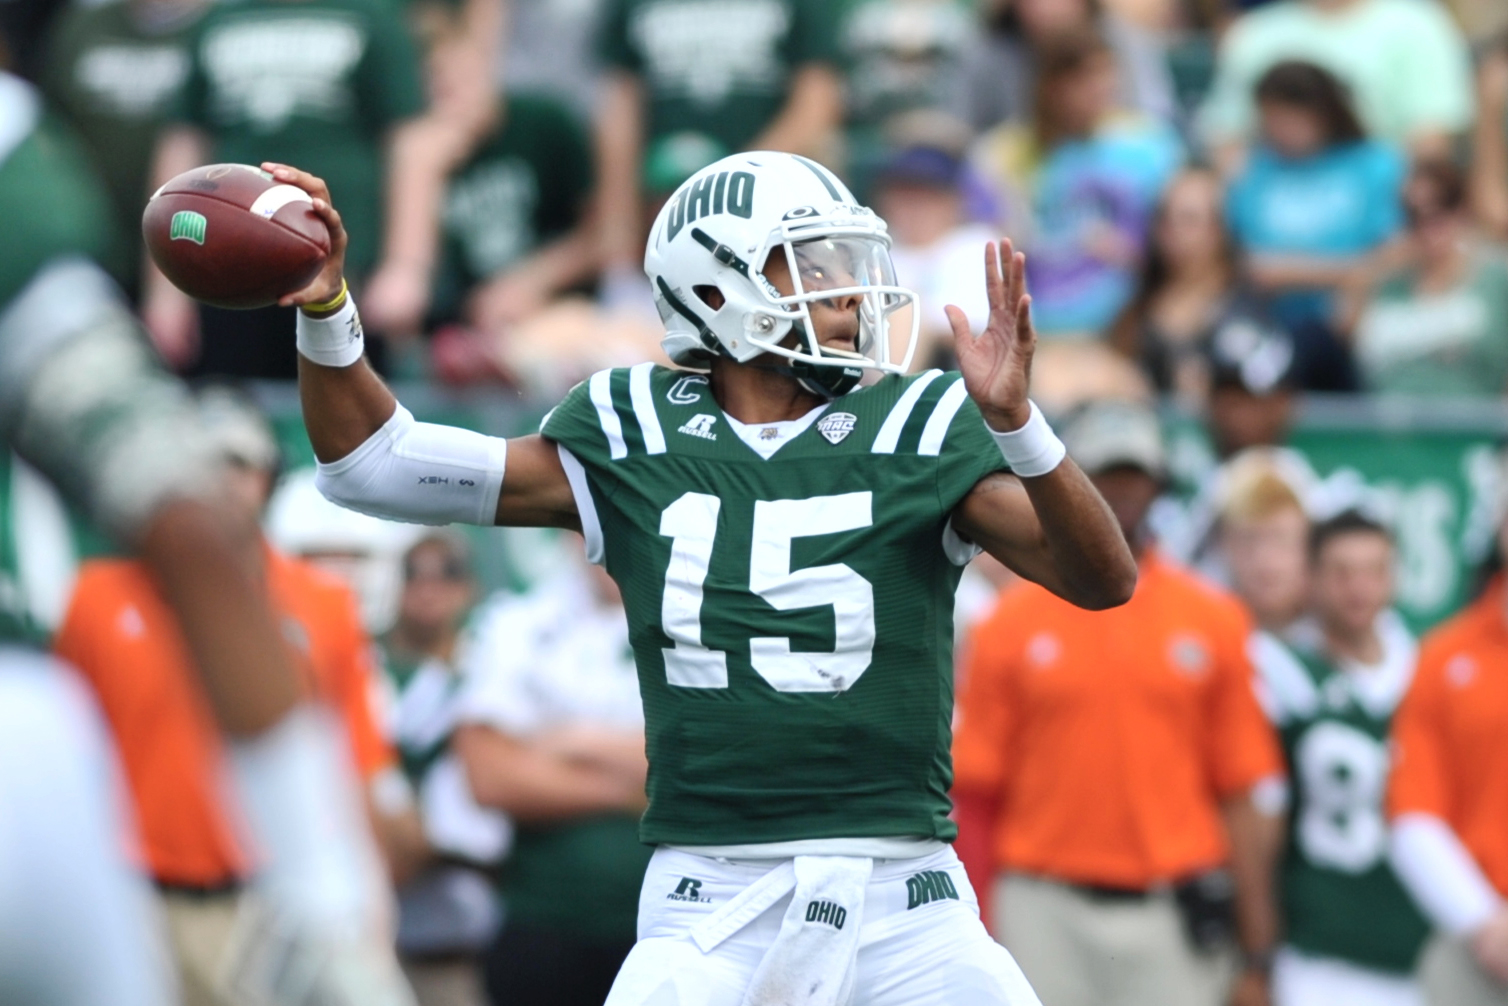 Ohio Bobcats quarterback Derrius Vick looks to pass the ball during the Bobcats' game against Southeastern Louisiana University on September 19, 2015, at Peden Stadium in Athens, Ohio.